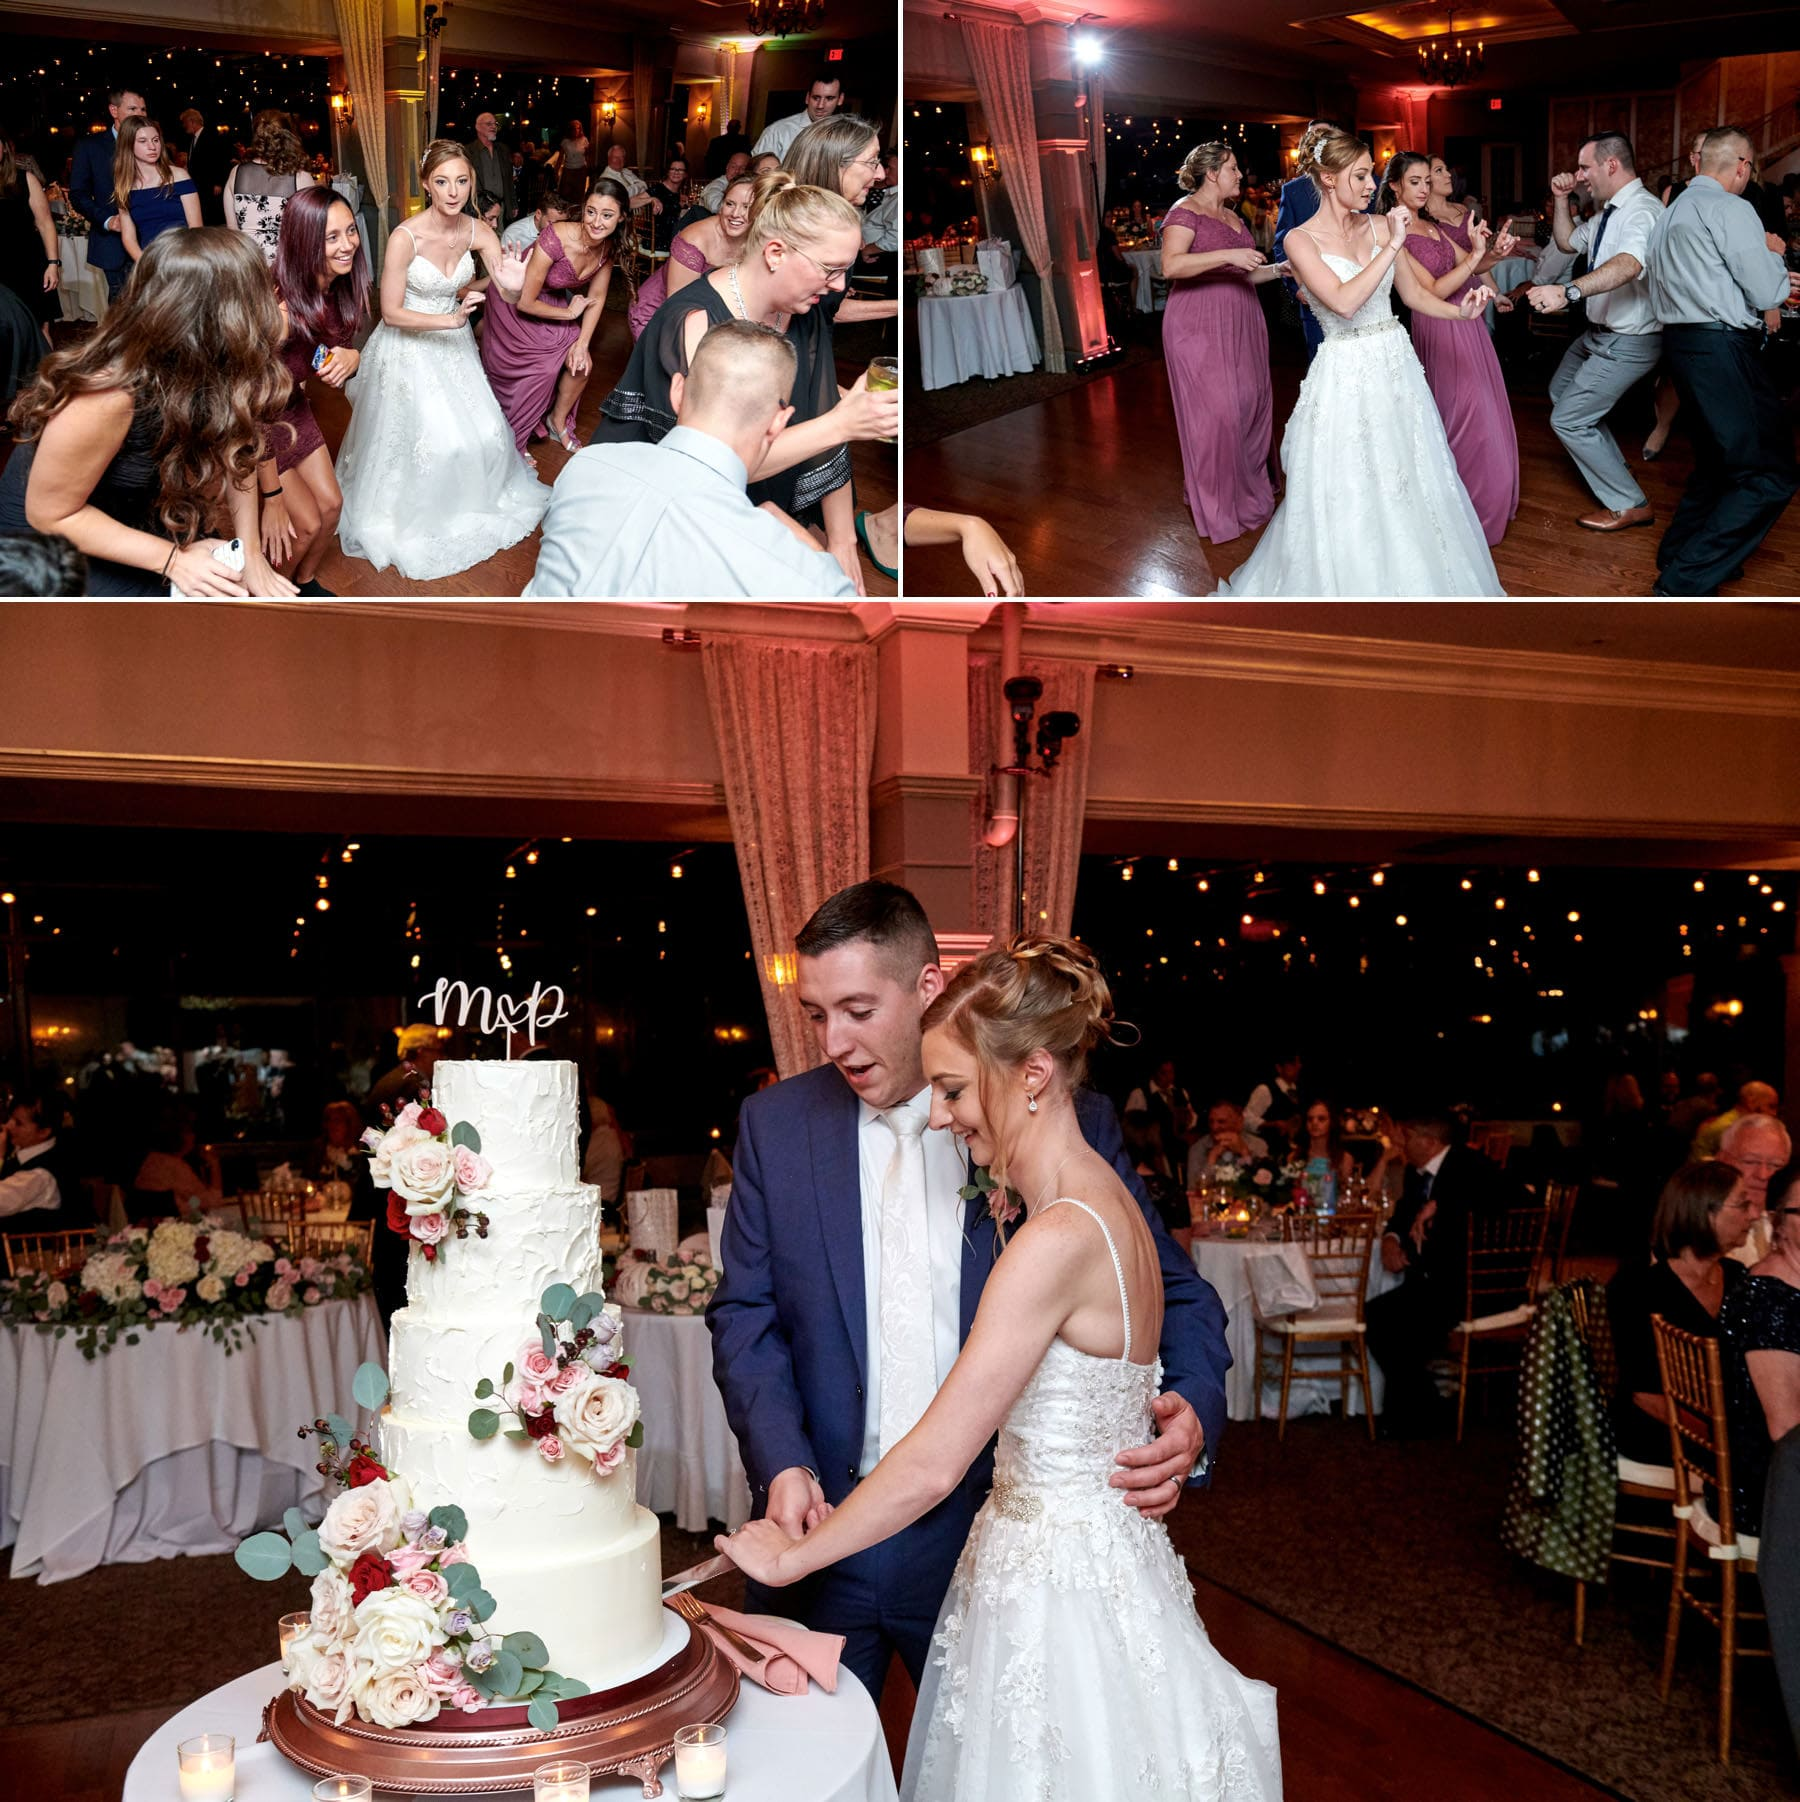 wedding cake cutting photos at ramsey country club